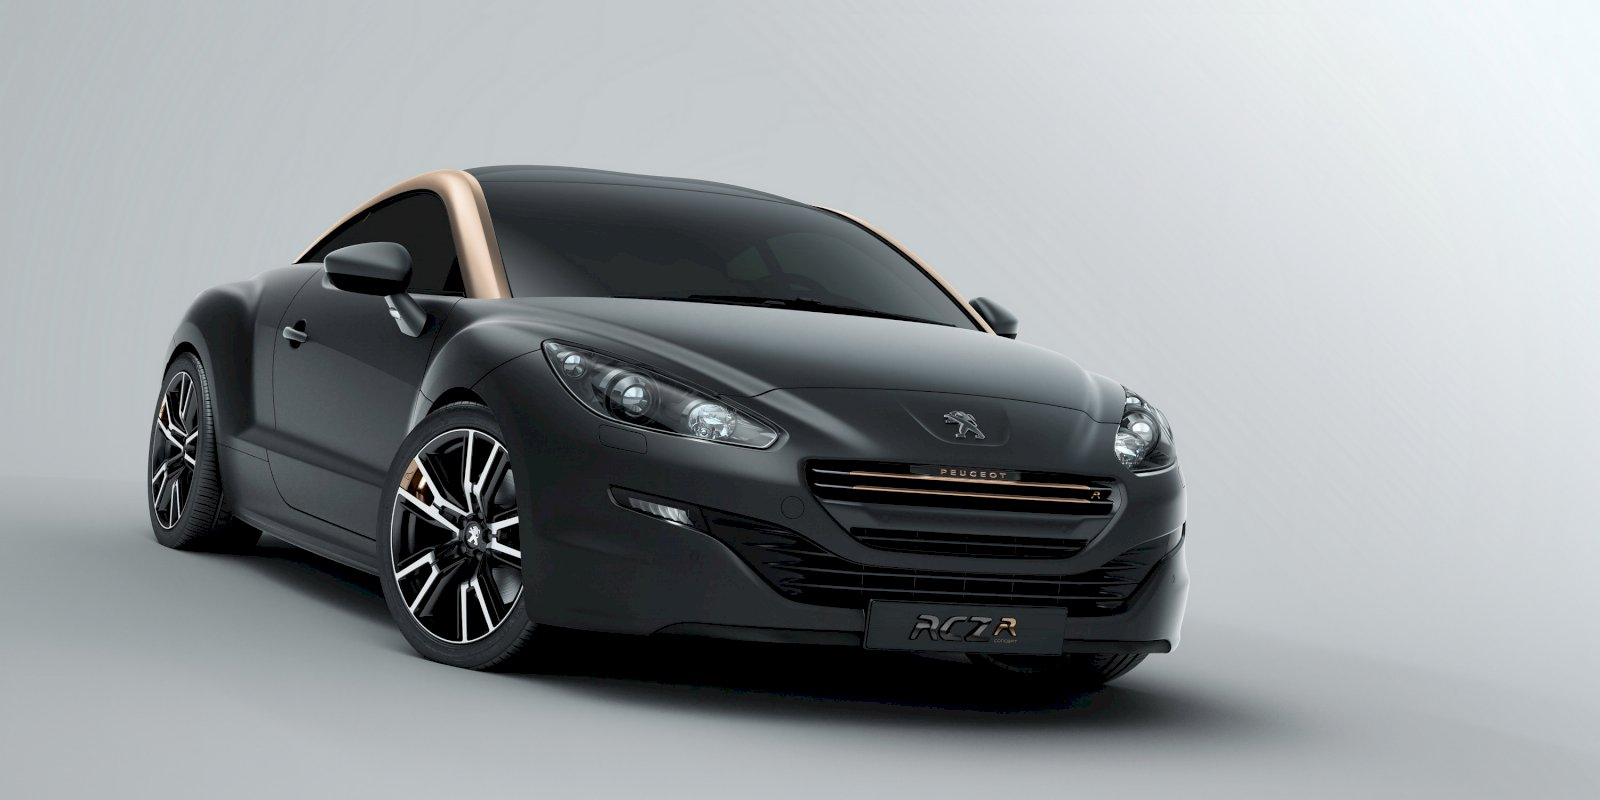 10 offres de peugeot rcz au meilleur prix du march. Black Bedroom Furniture Sets. Home Design Ideas